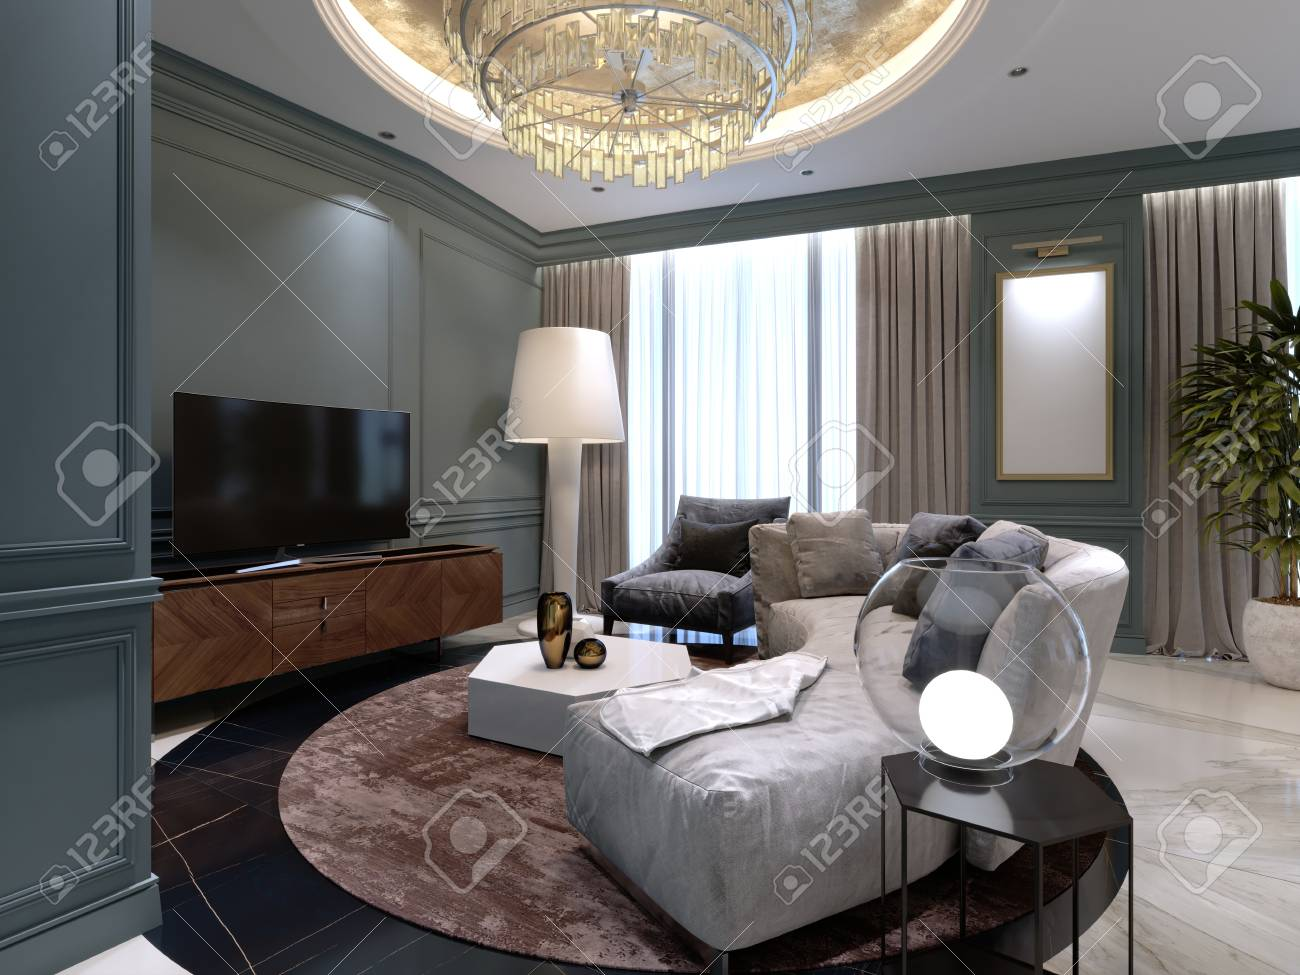 A Small Living Room With A Semi Circular Sofa And A Comfortable